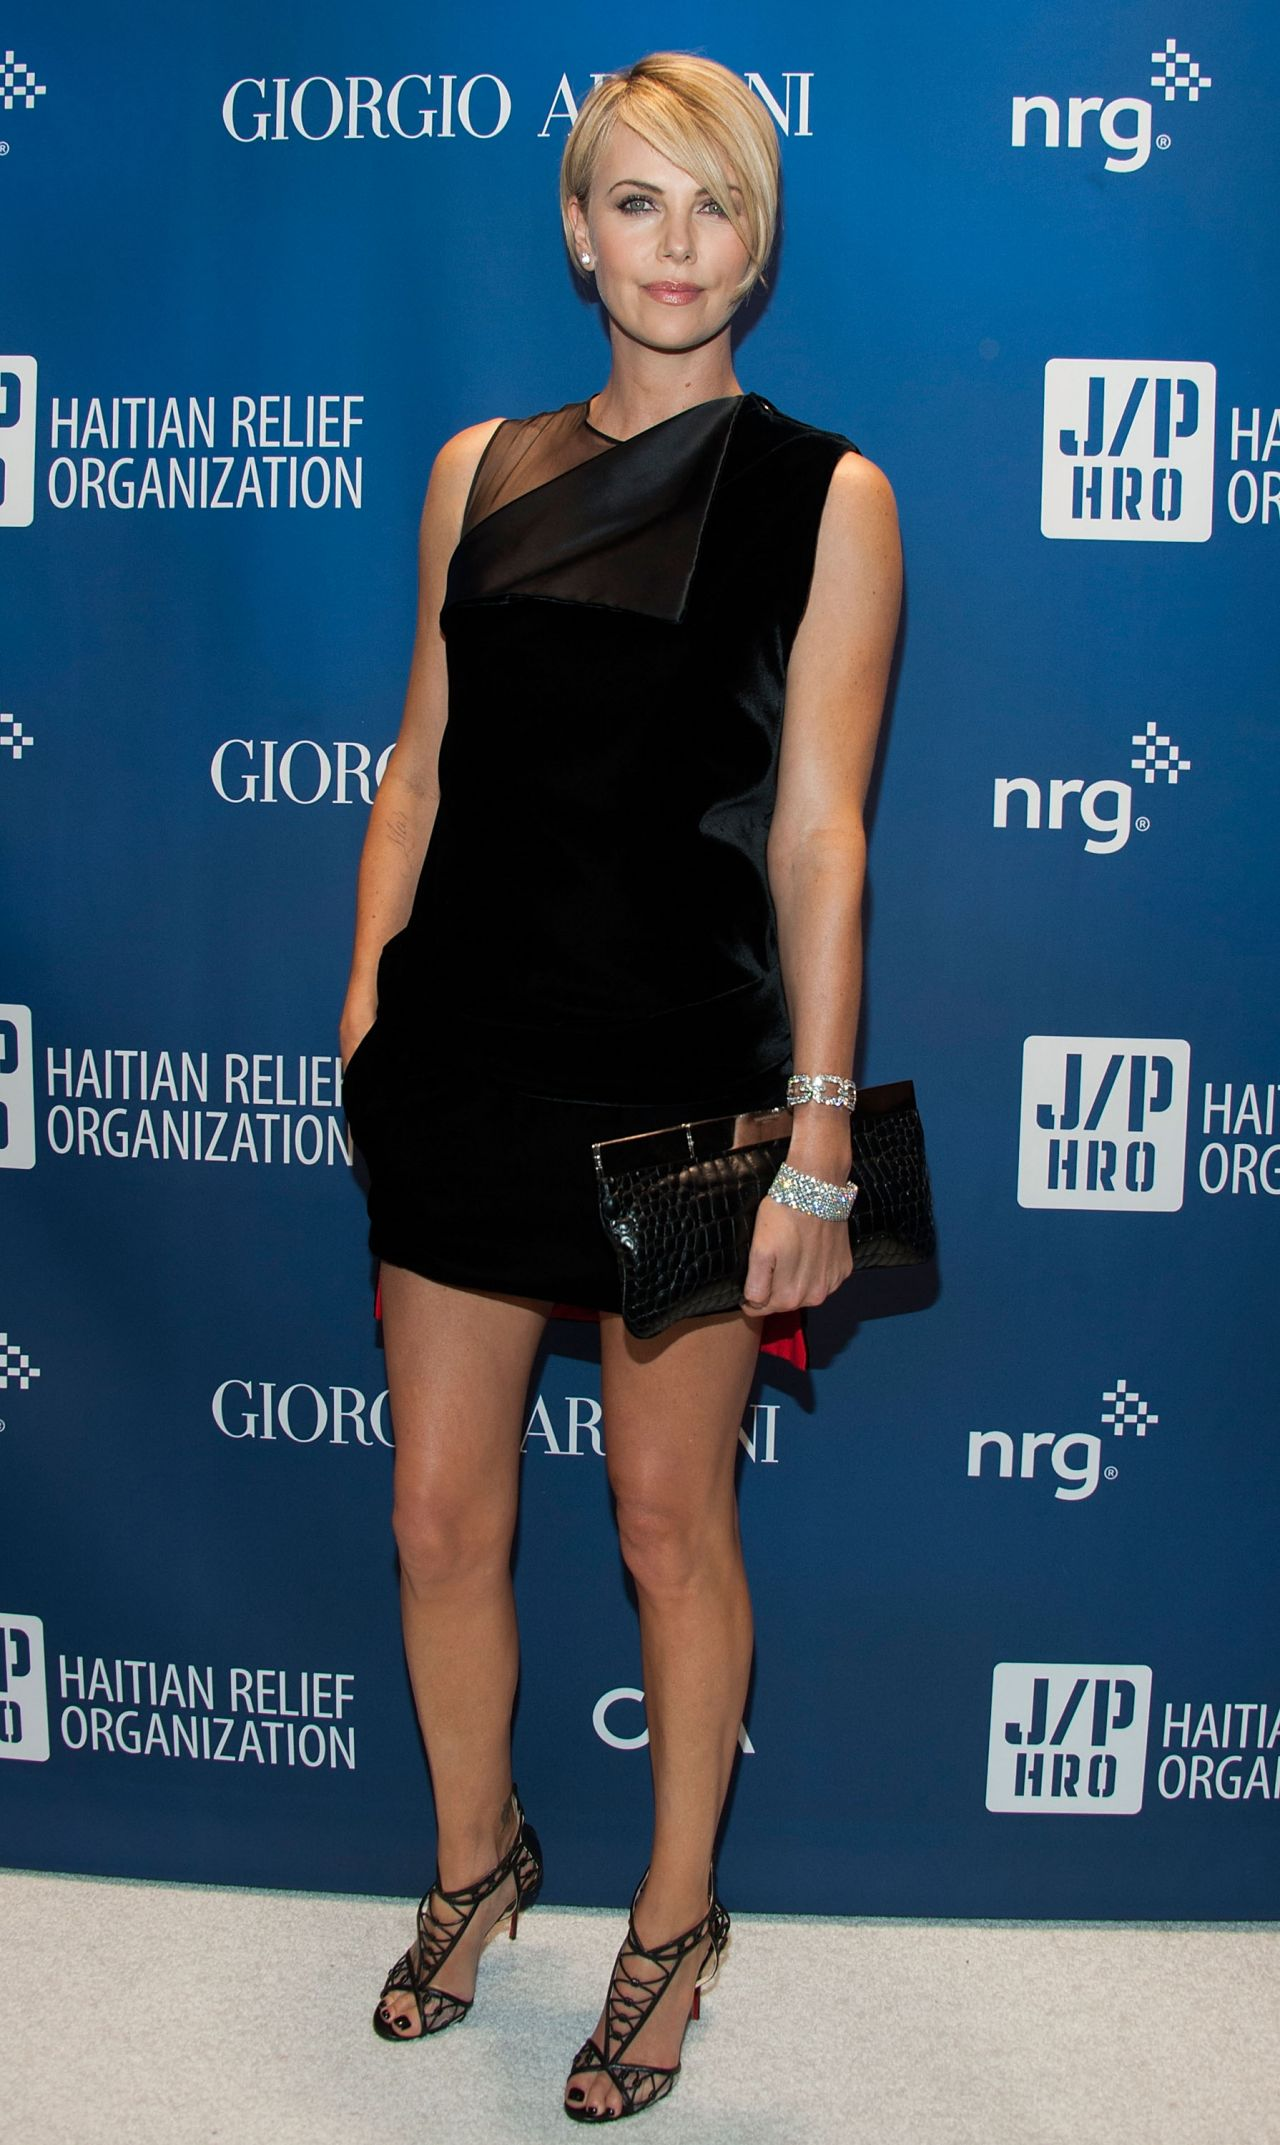 Charlize Theron Wearing Givenchy Dress at Sean Penn & Friends Help Haiti Home Gala, January 2014